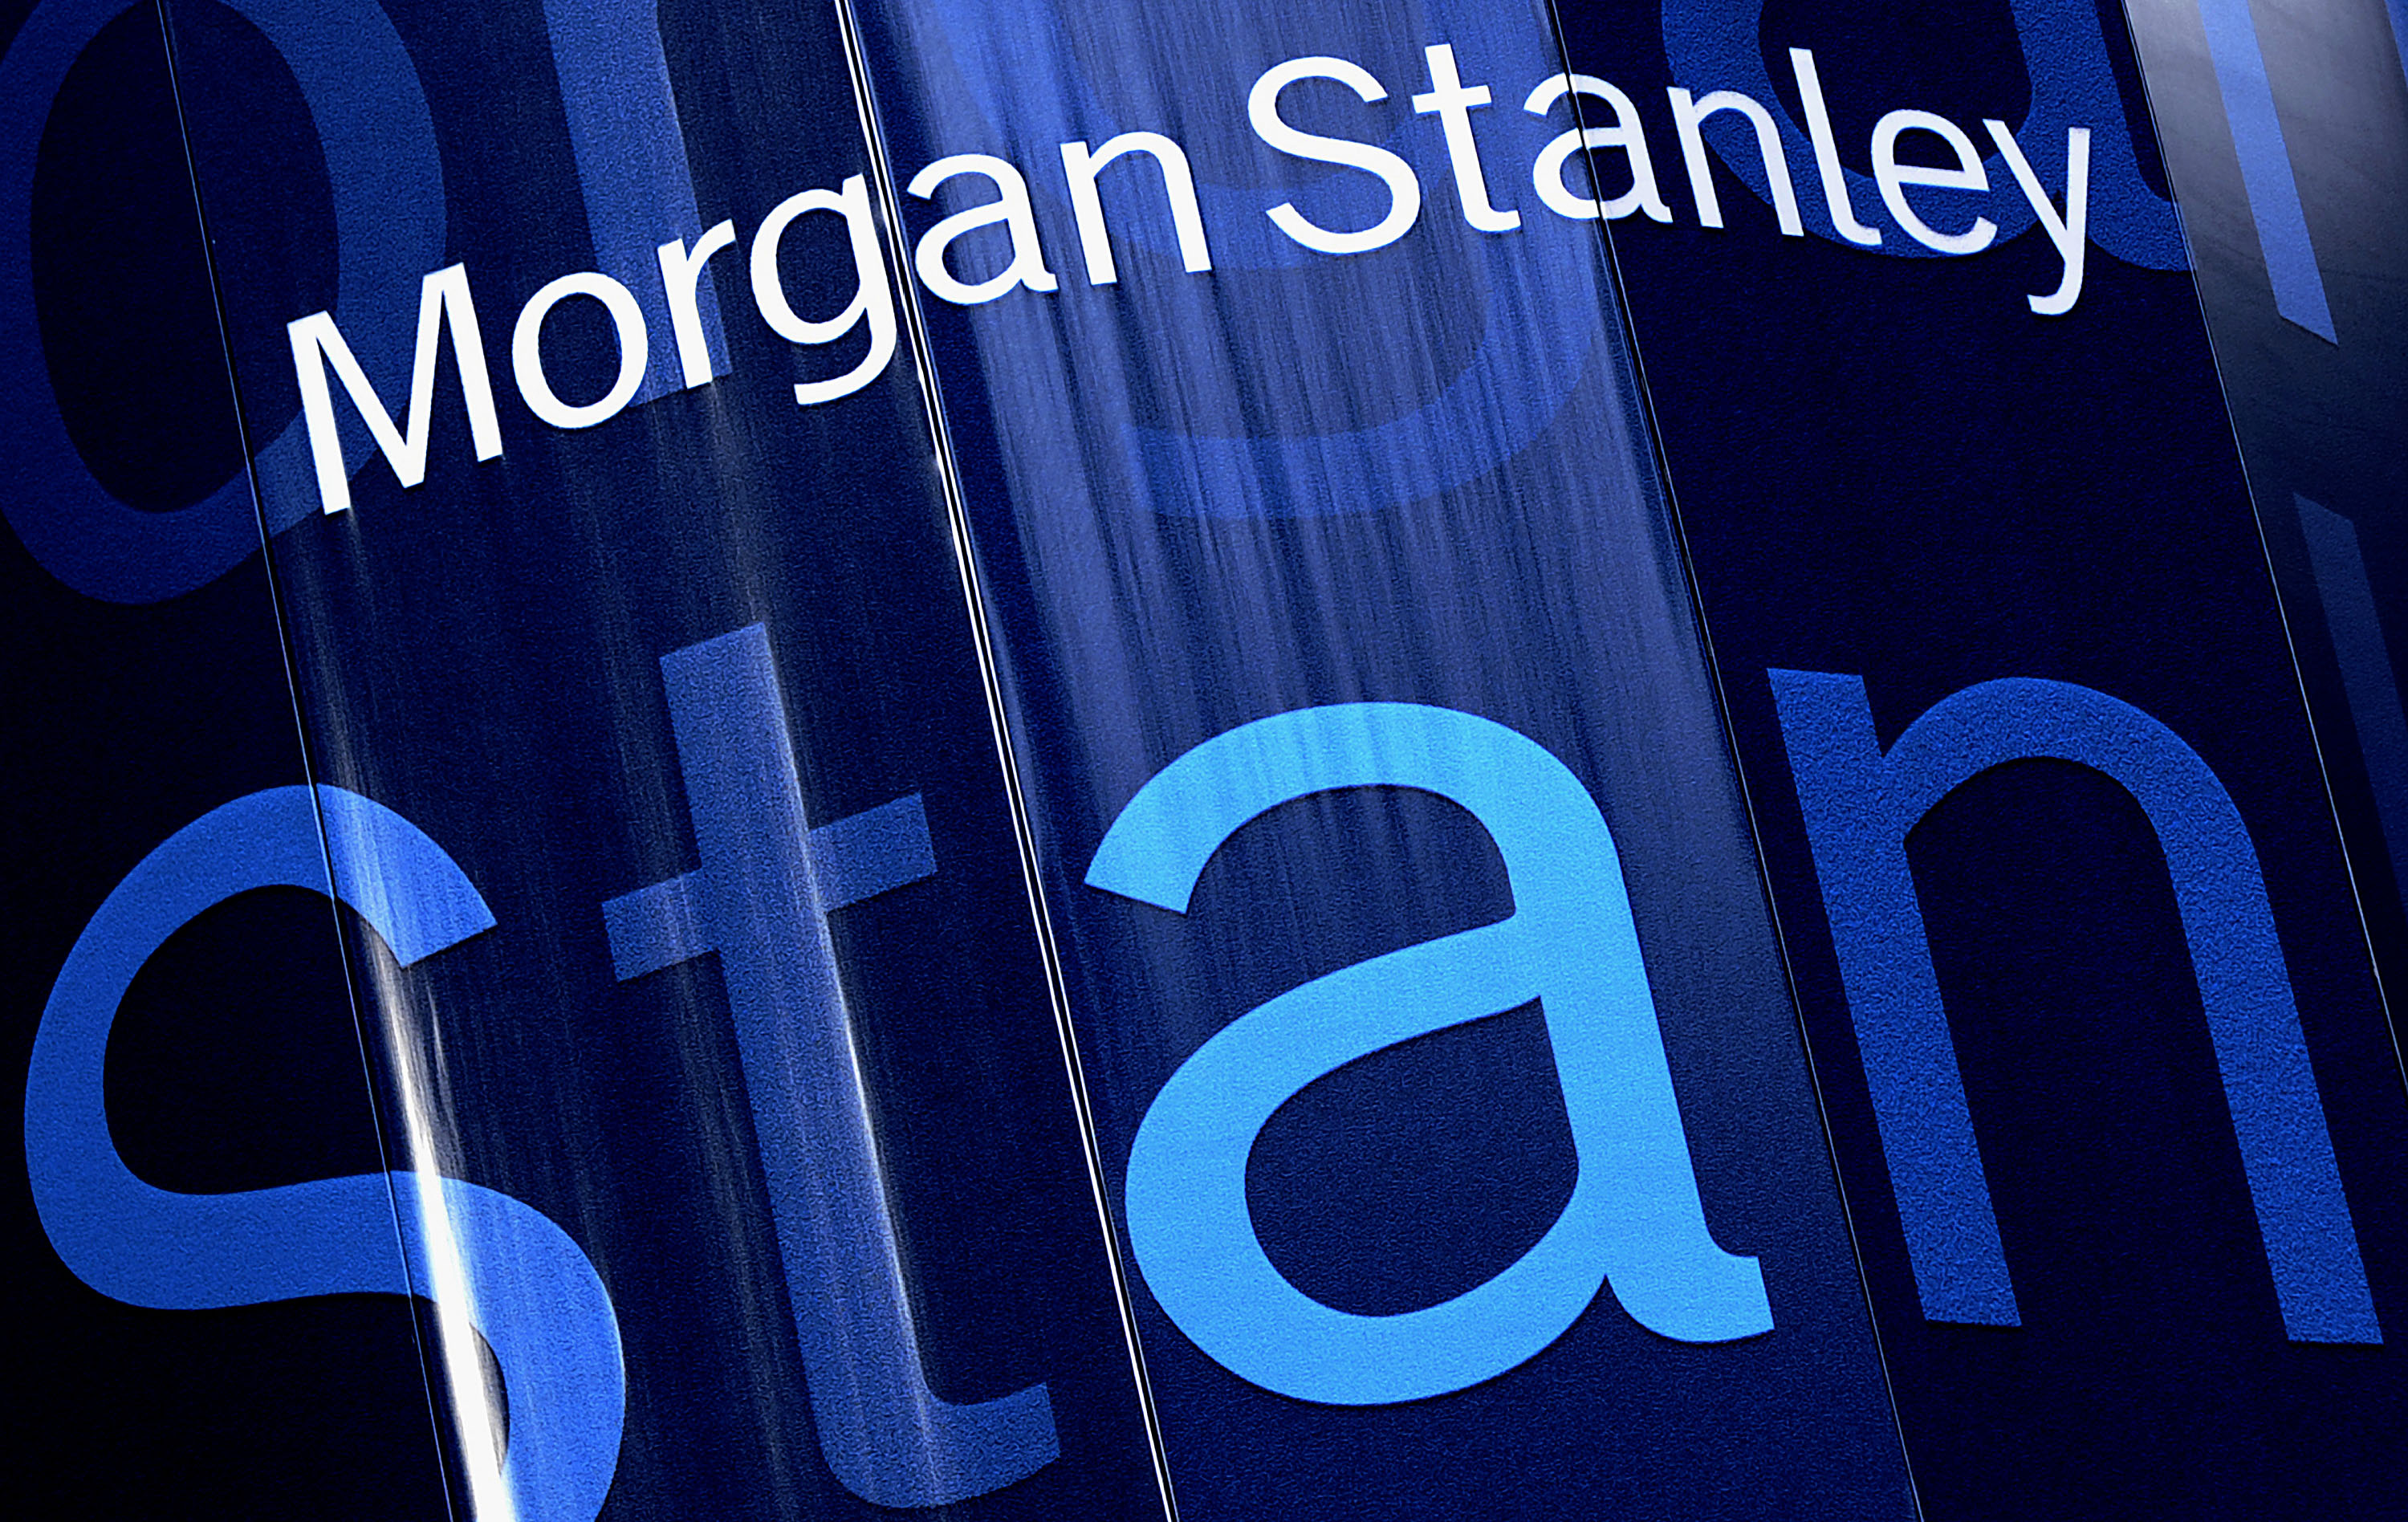 Morgan Stanley Announces Layoffs